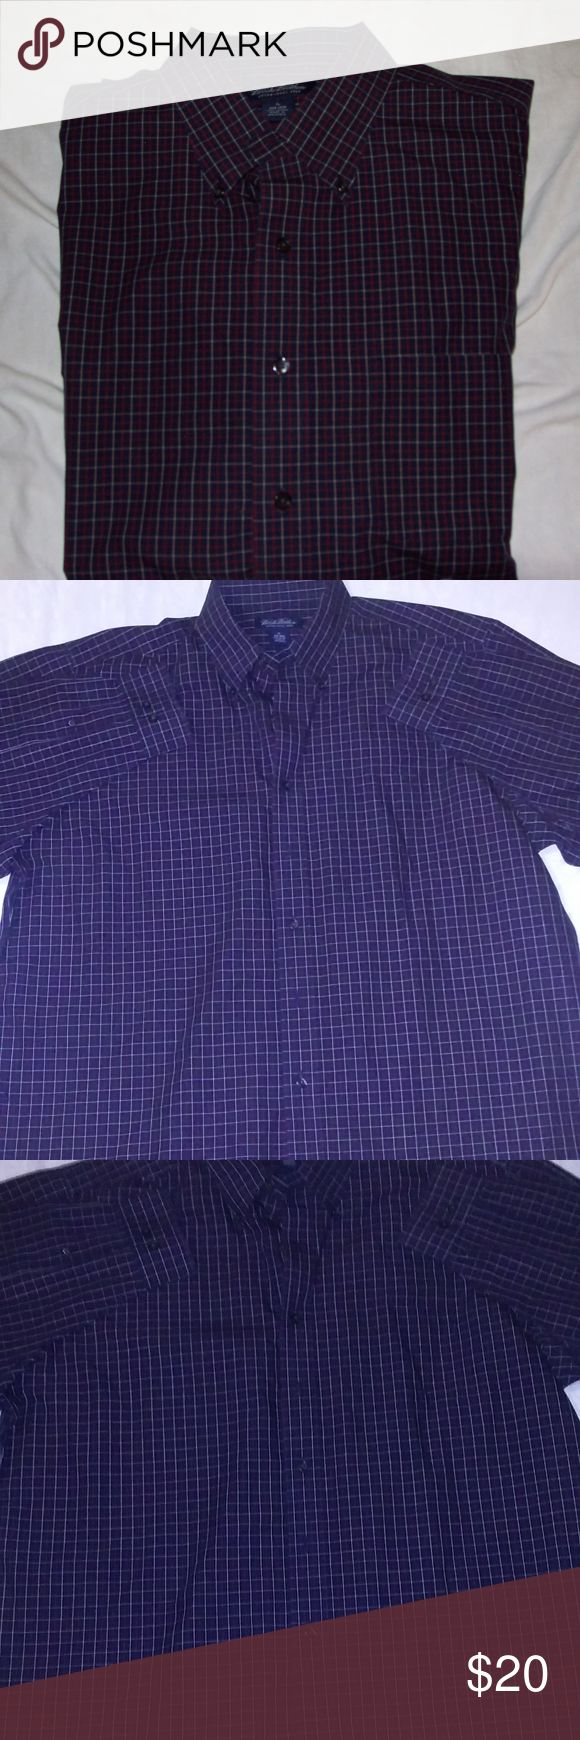 BROOKS BROTHERS mens XL non iron shirt plaid Here we have a Brooks Brothers Non Iron Dress Shirt.   Dark Blue w/ white & red stripes to make CHECKS DESIGN  Very Good condition, Size XL  If you have any questions or would like more pics feel free to ask. Brooks Brothers Shirts Dress Shirts